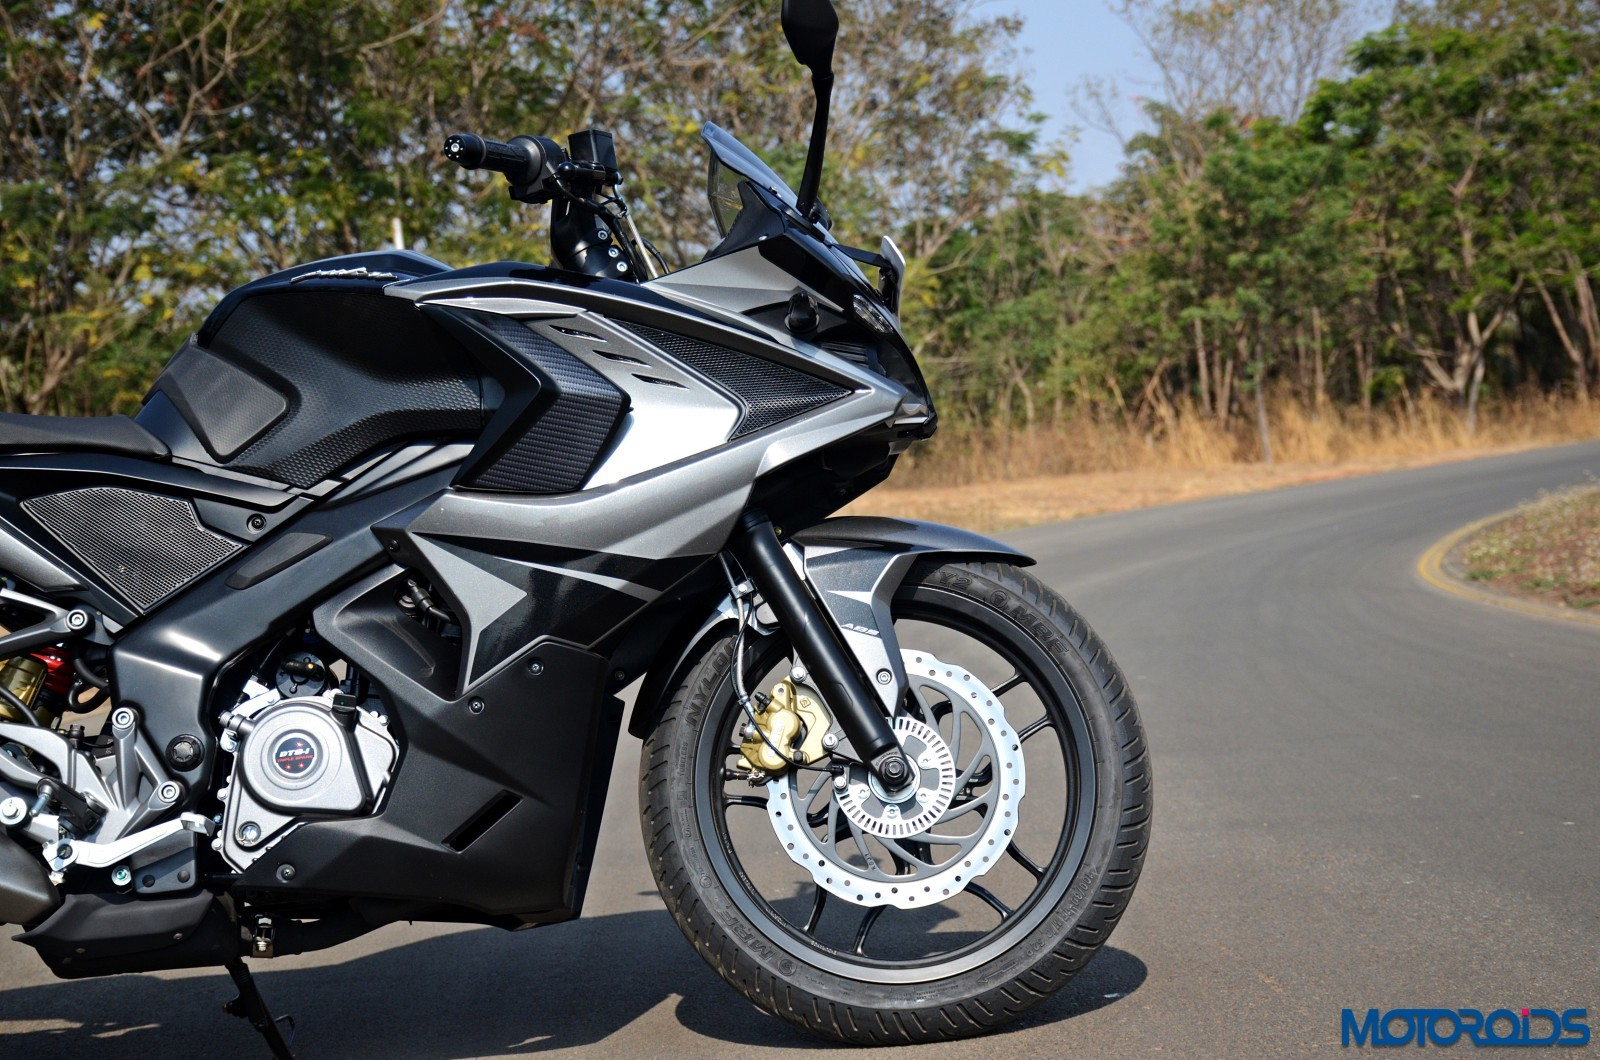 2017 Bajaj Rs200 First Ride Review List Of Changes